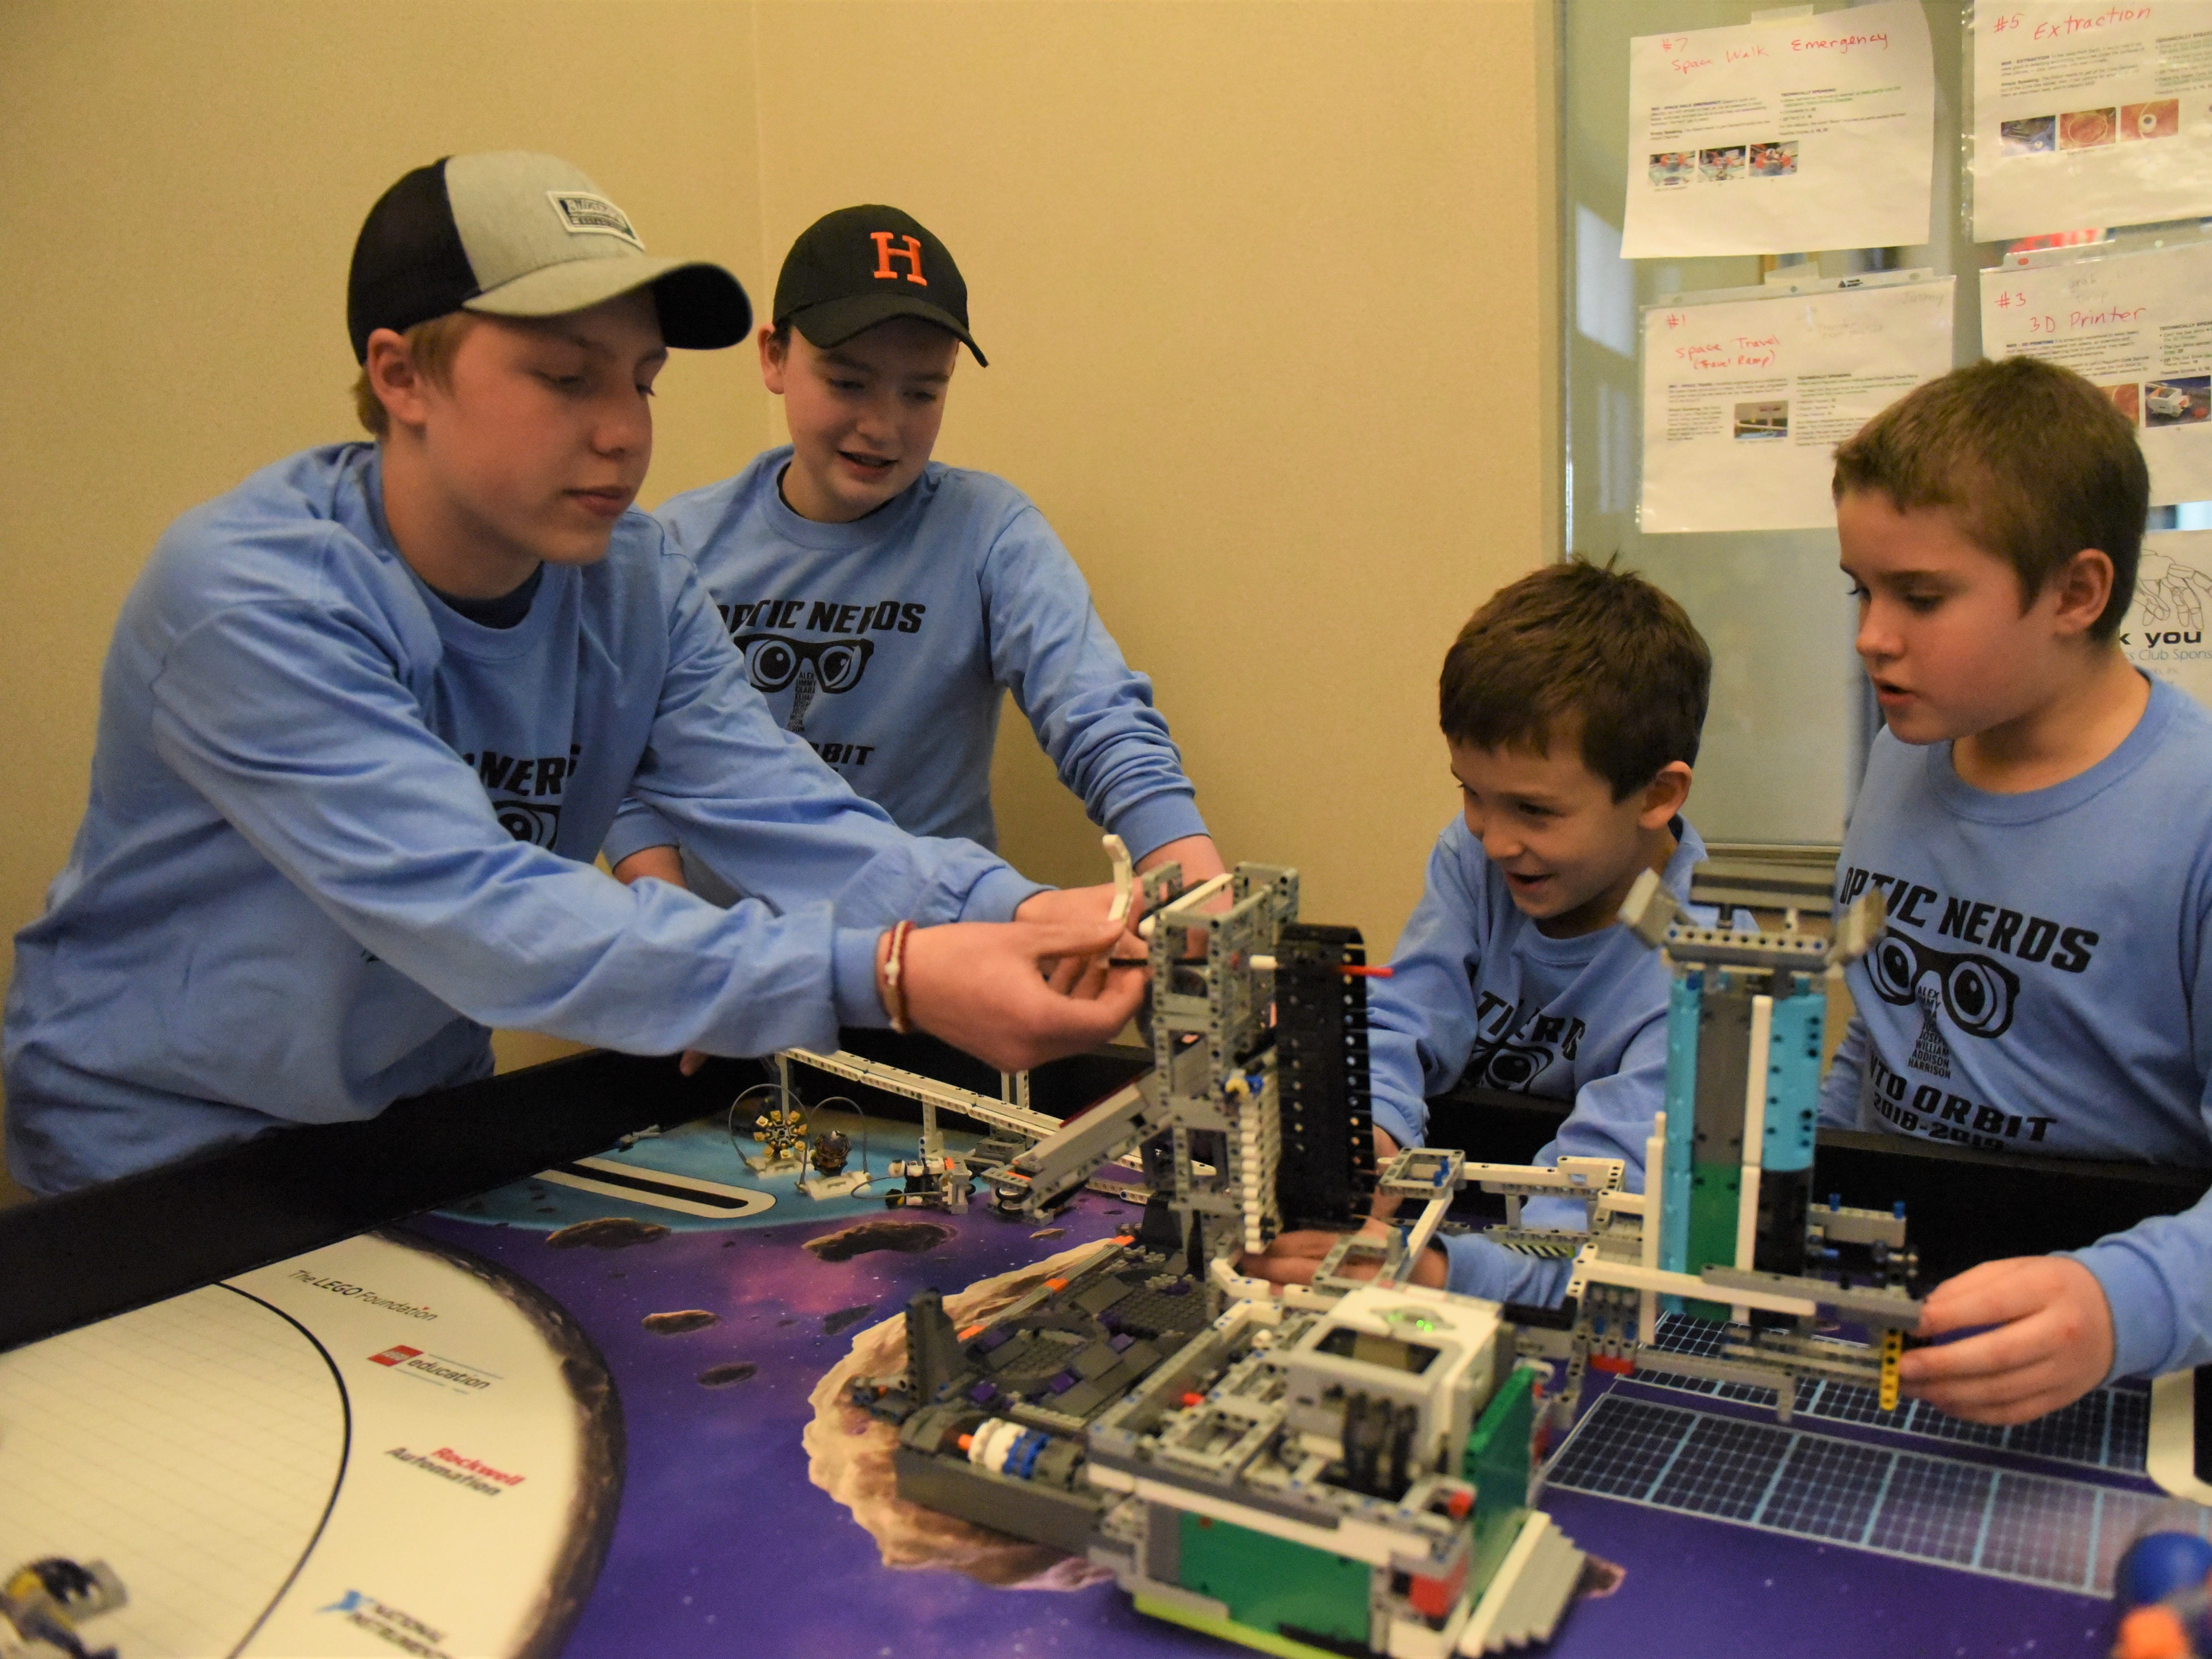 From left, Elijah Morton, 13, Josiah Brower, 13, Harrison Roth, 9, and Joseph McCall, 11, tinker with their robot at a practice before the FIRST LEGO League Competition on Jan. 26. They are four of the members of the Optic Nerds robotics team at the Guthrie Memorial Library.